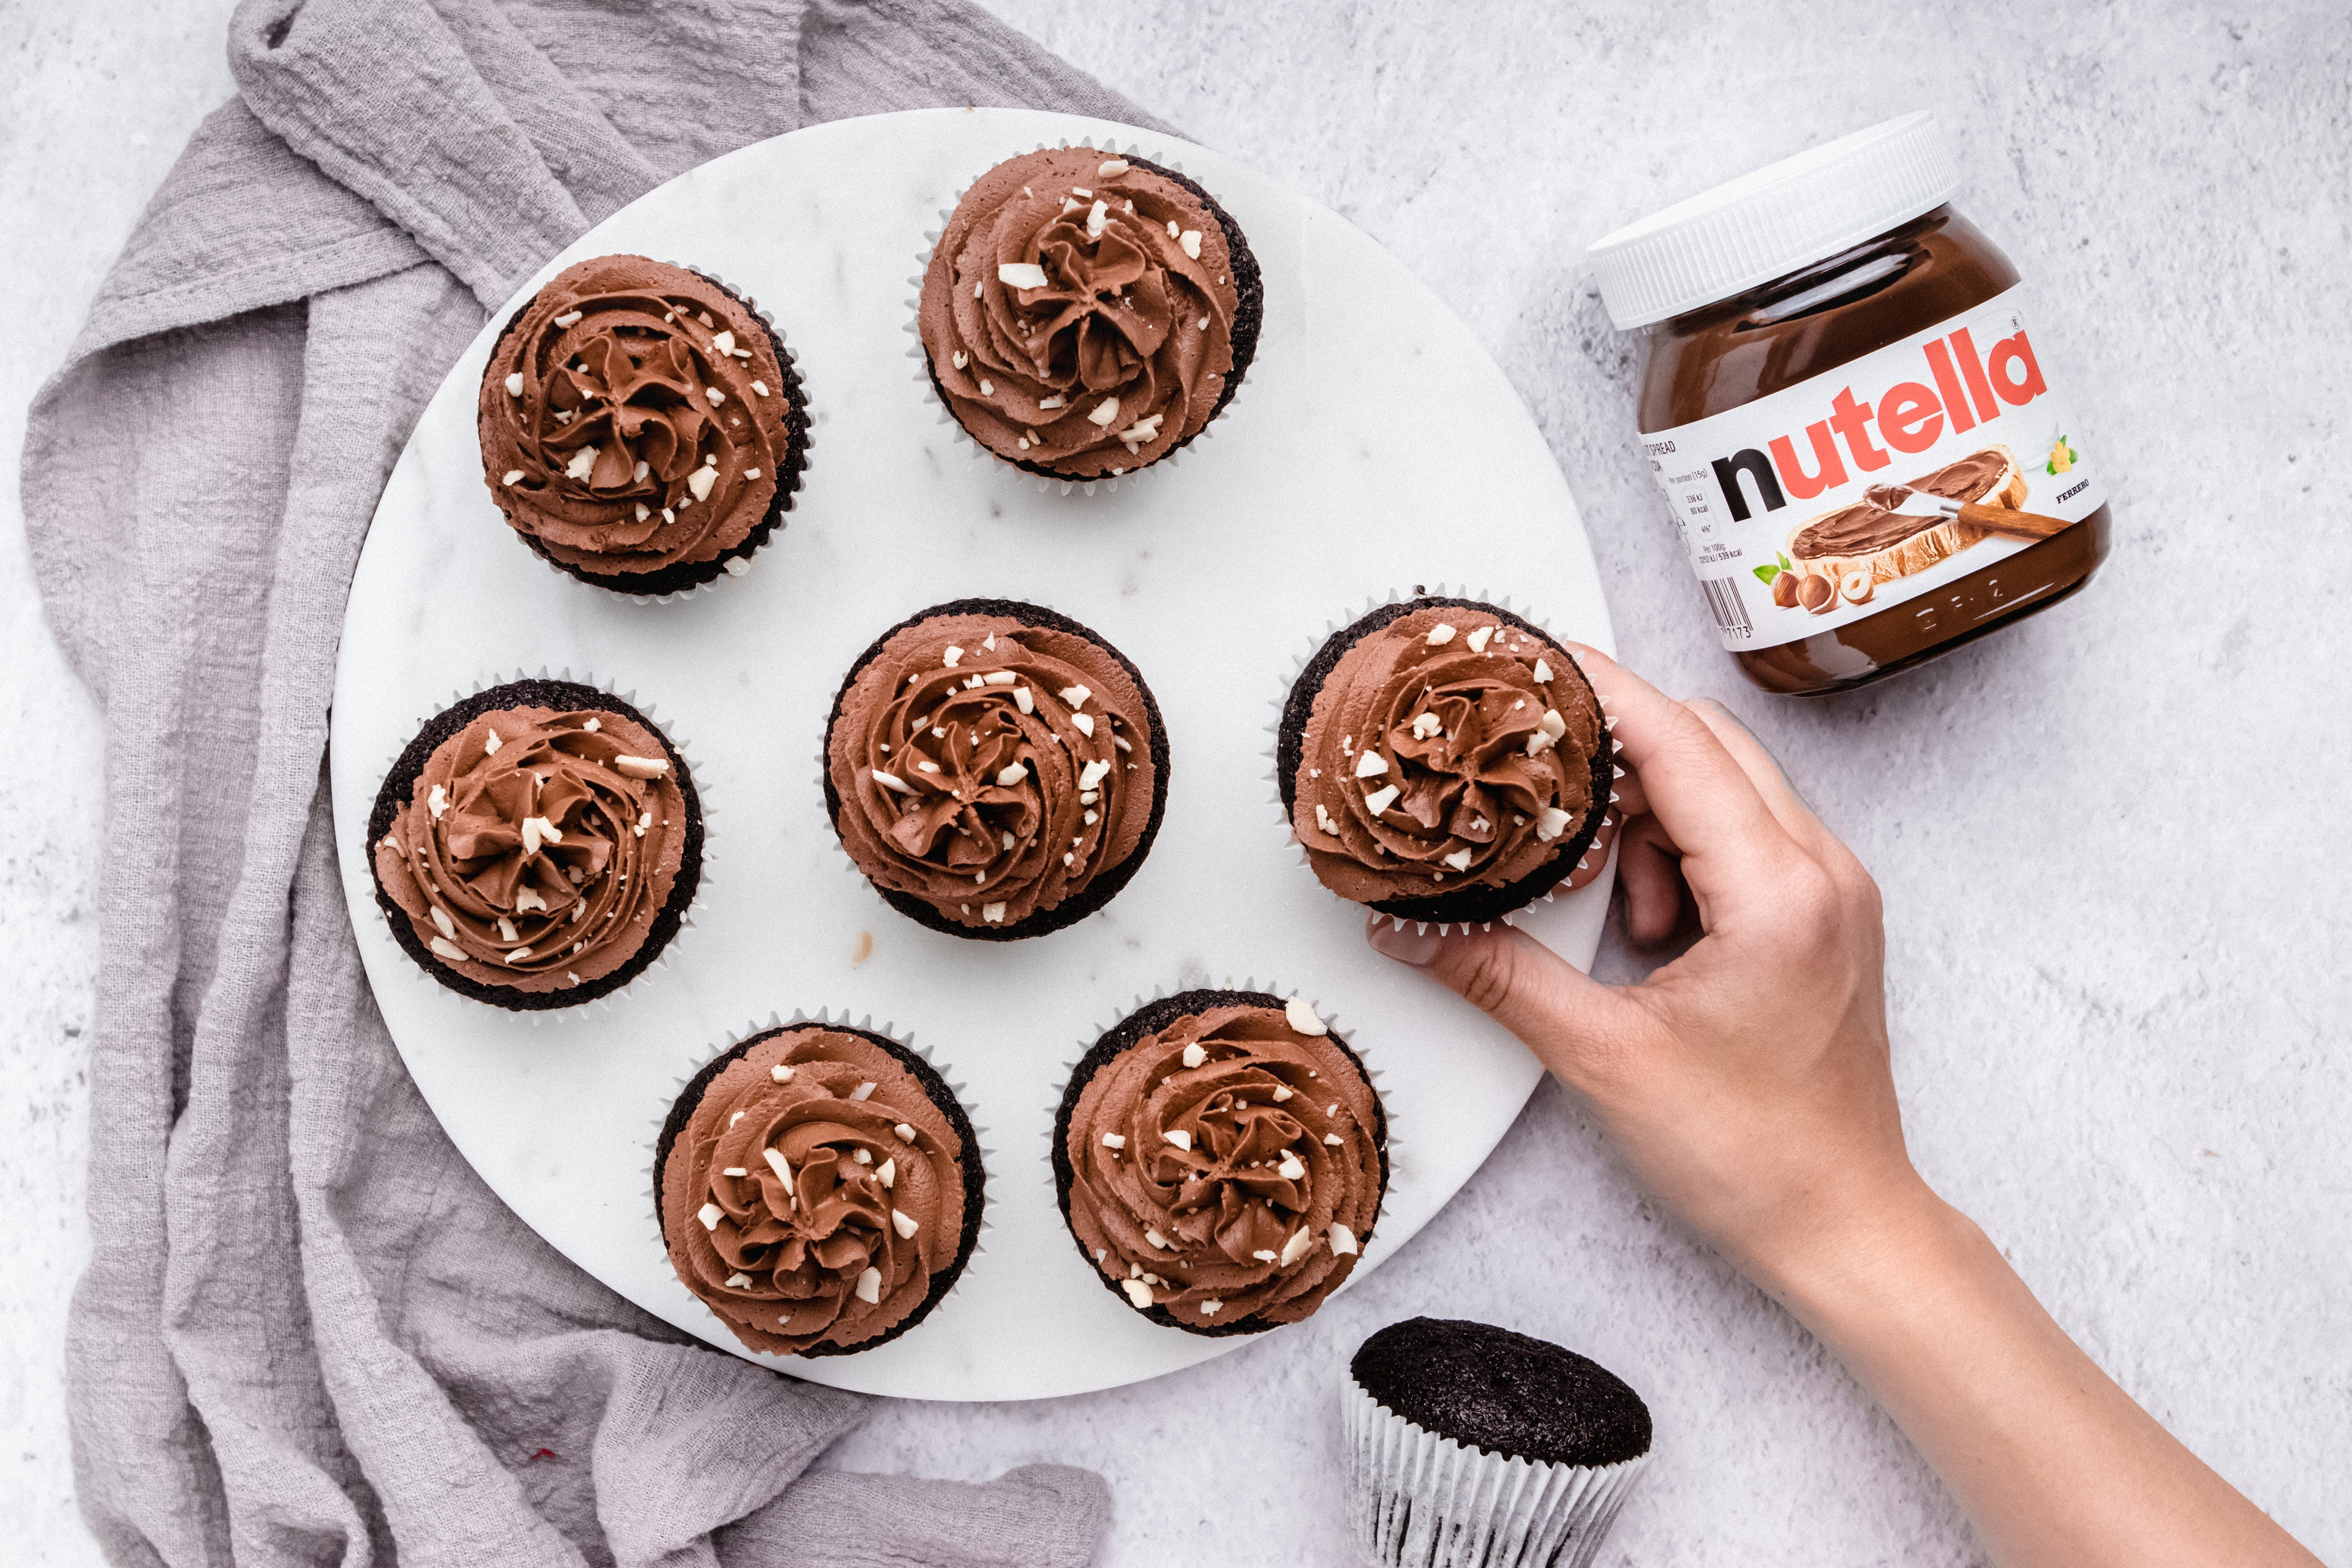 Nutella Cupcakes from above, with hand holding a cupcake next to a jar of Nutella